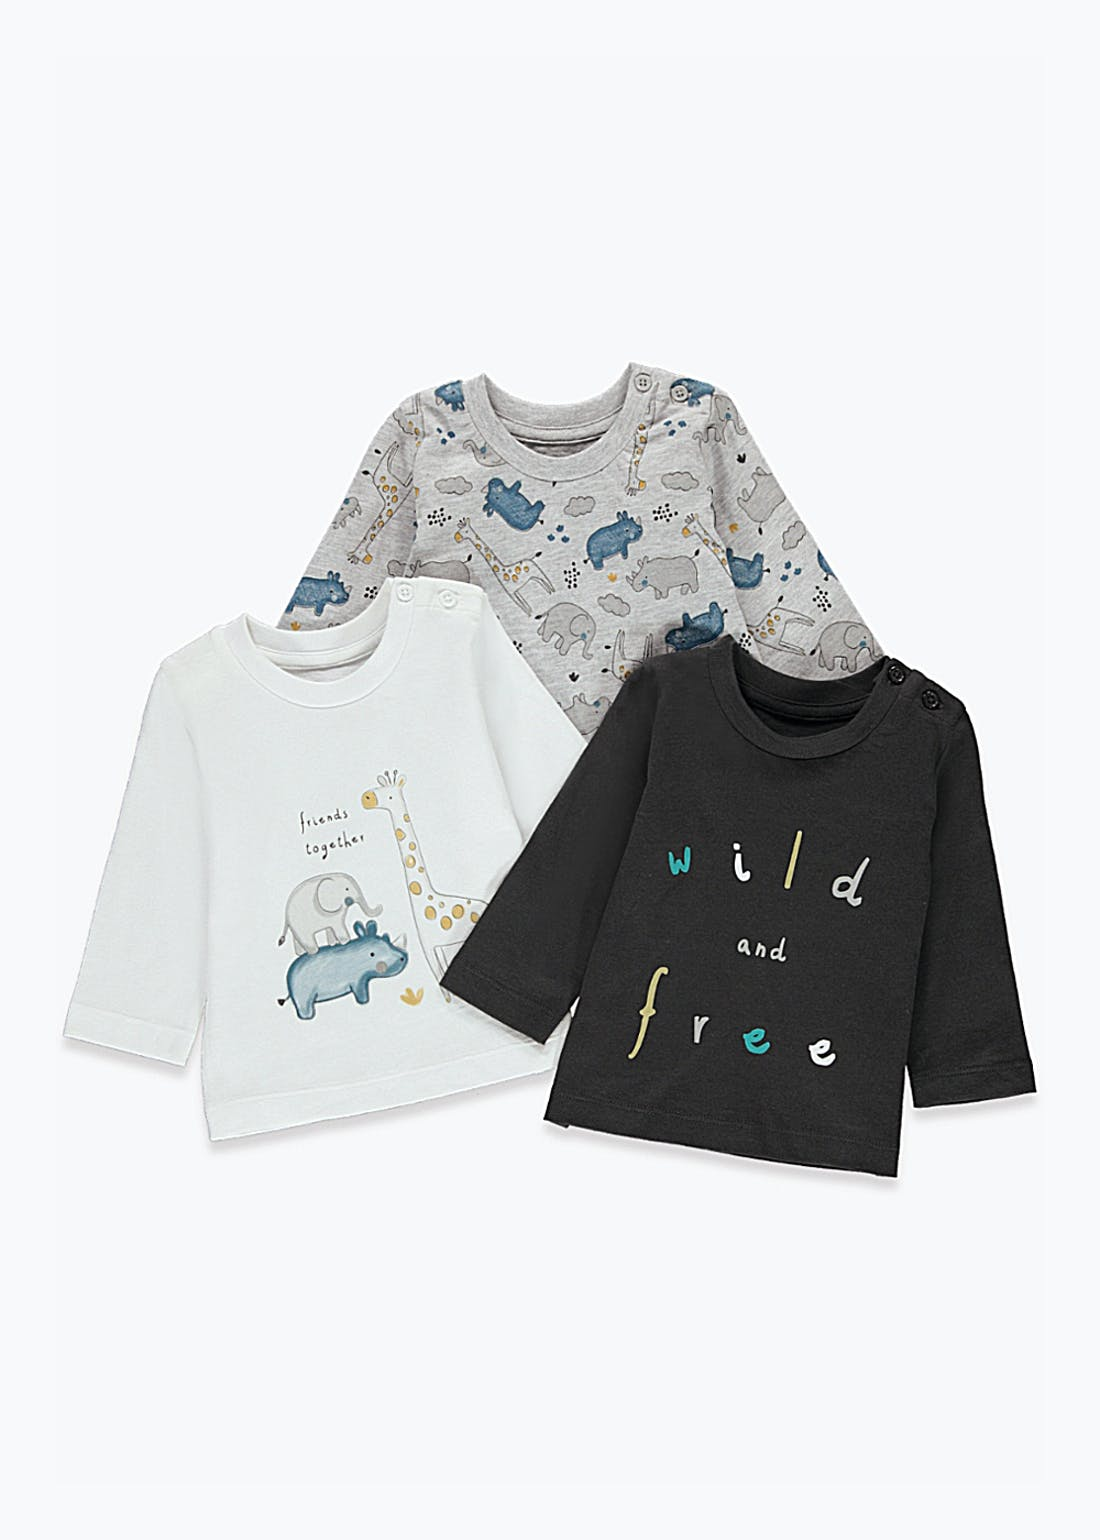 Unisex 3 Pack Safari T-Shirts (Newborn-23mths)